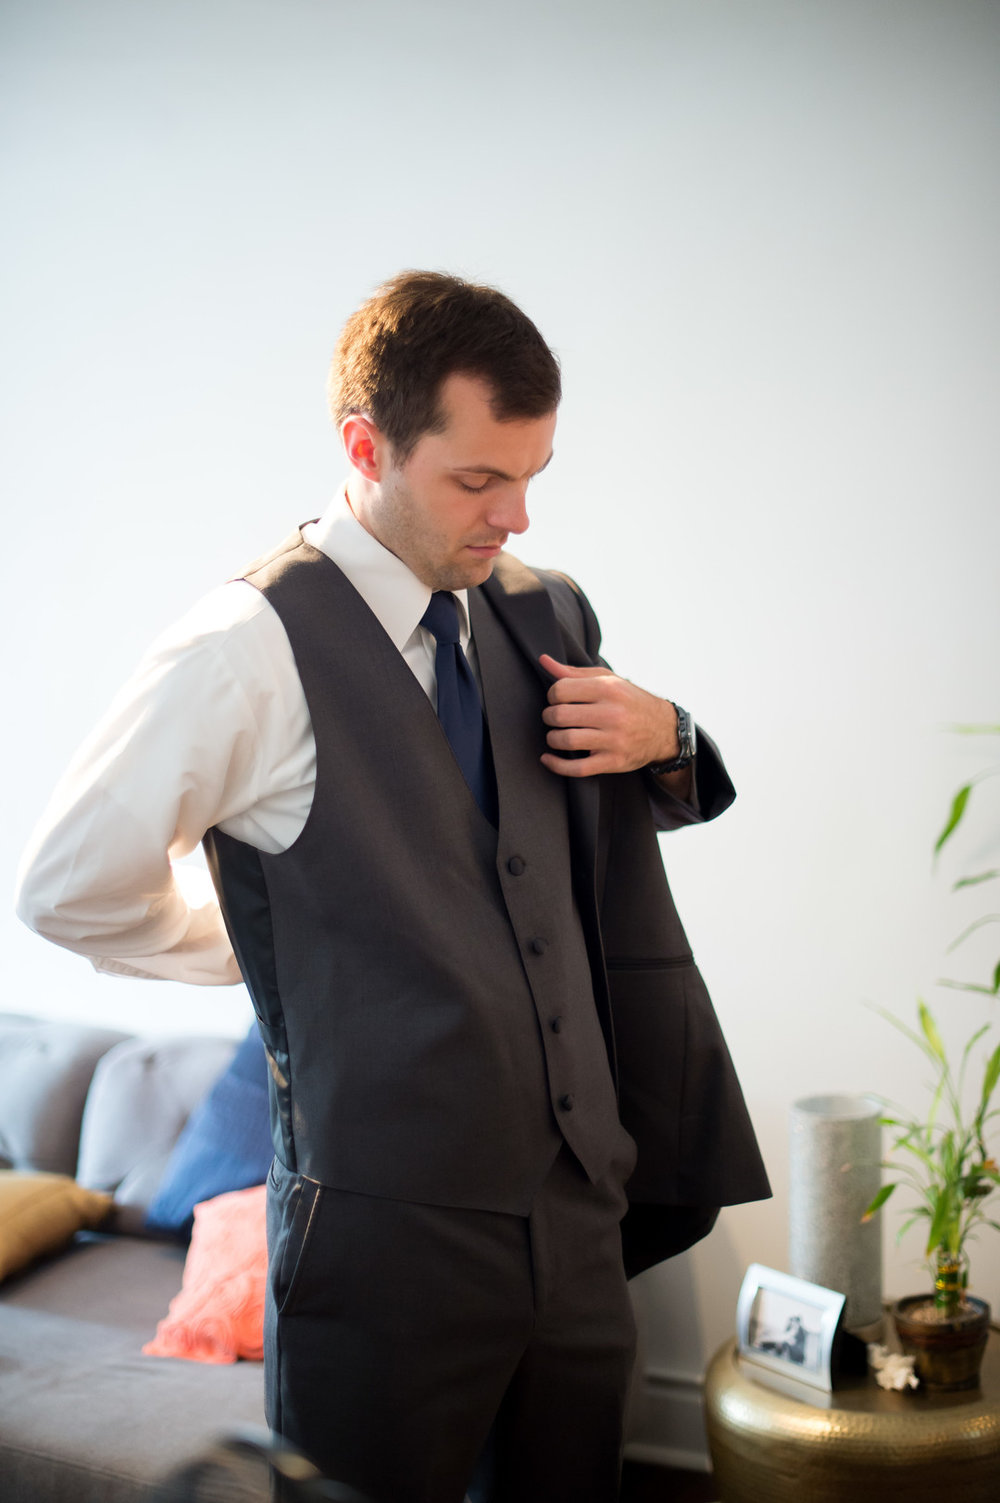 Groom Getting Ready Photo Chicago Wedding Julia Franzosa Photography